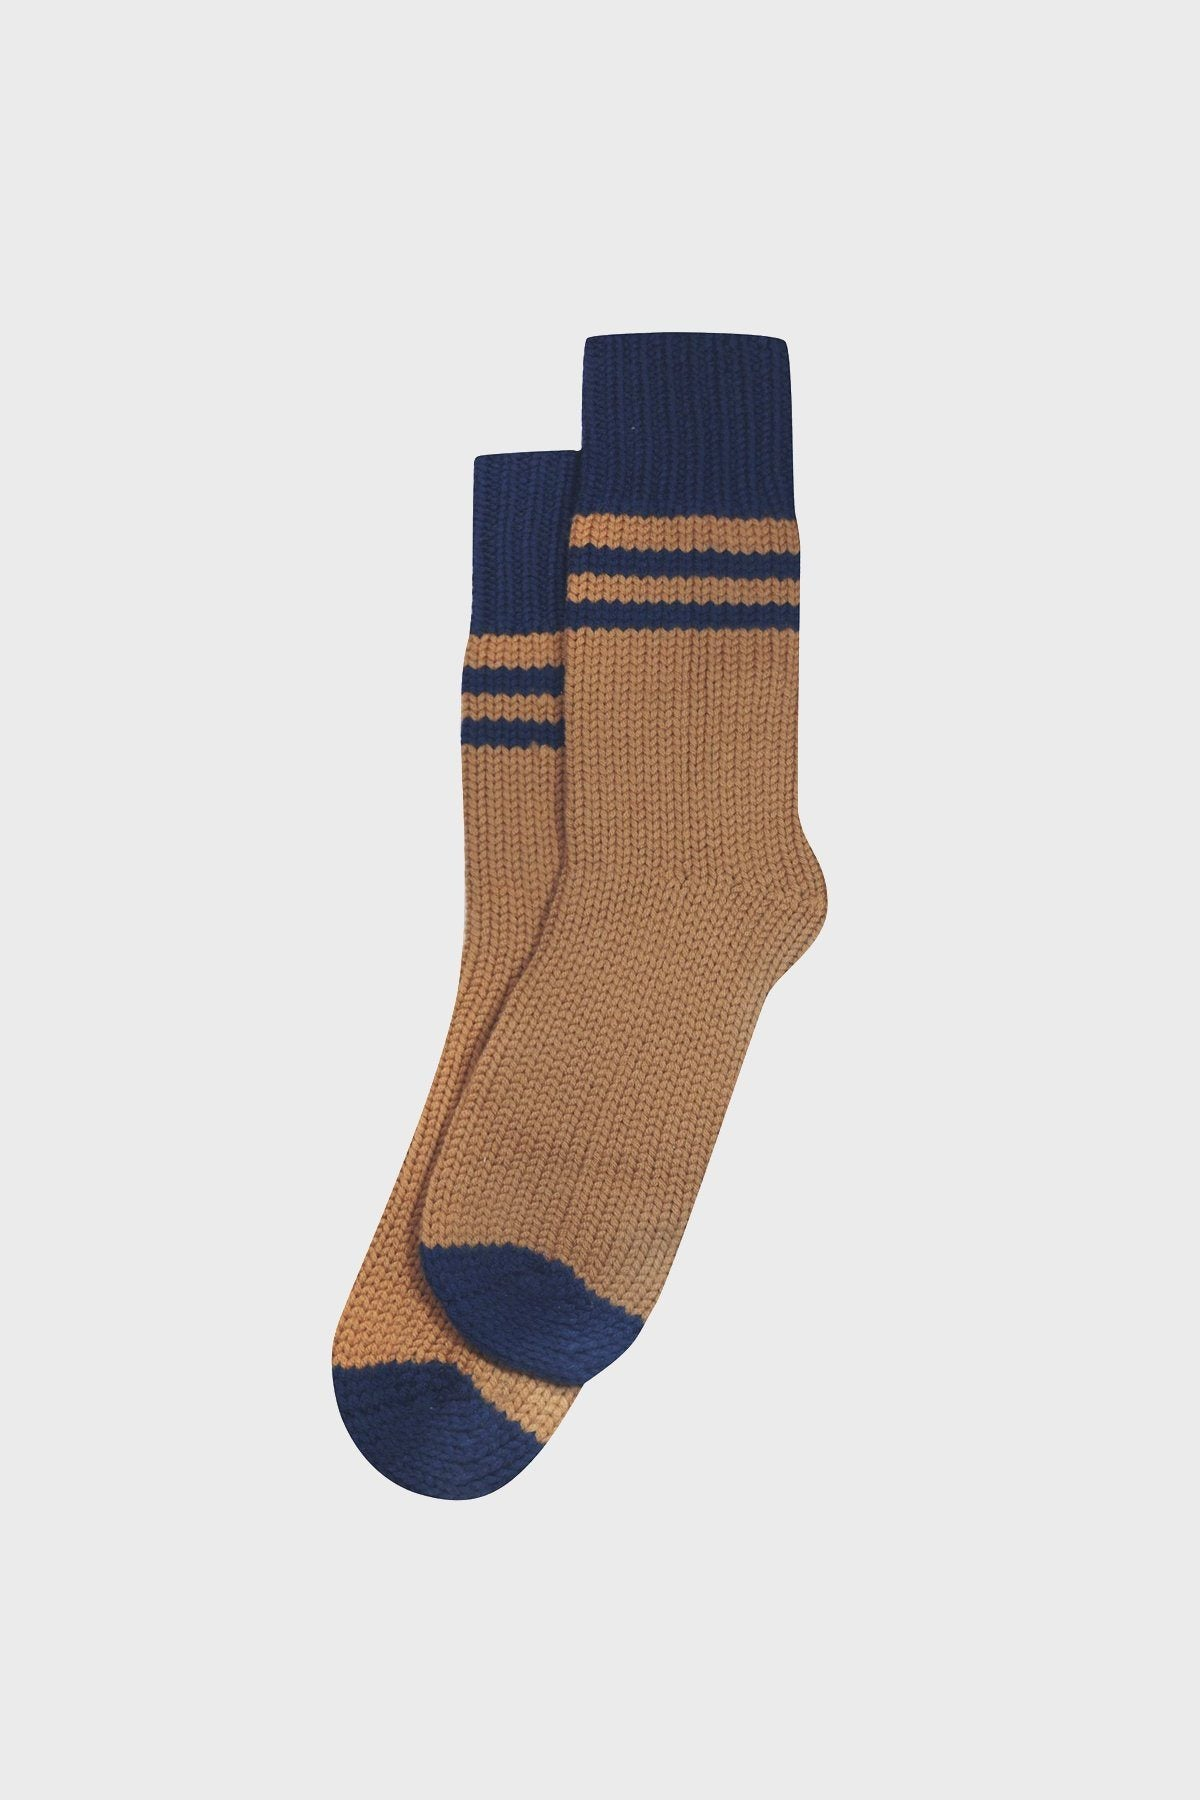 Wool Navy and Tobacco Cabin Socks - Life in Paradigm Menswear London